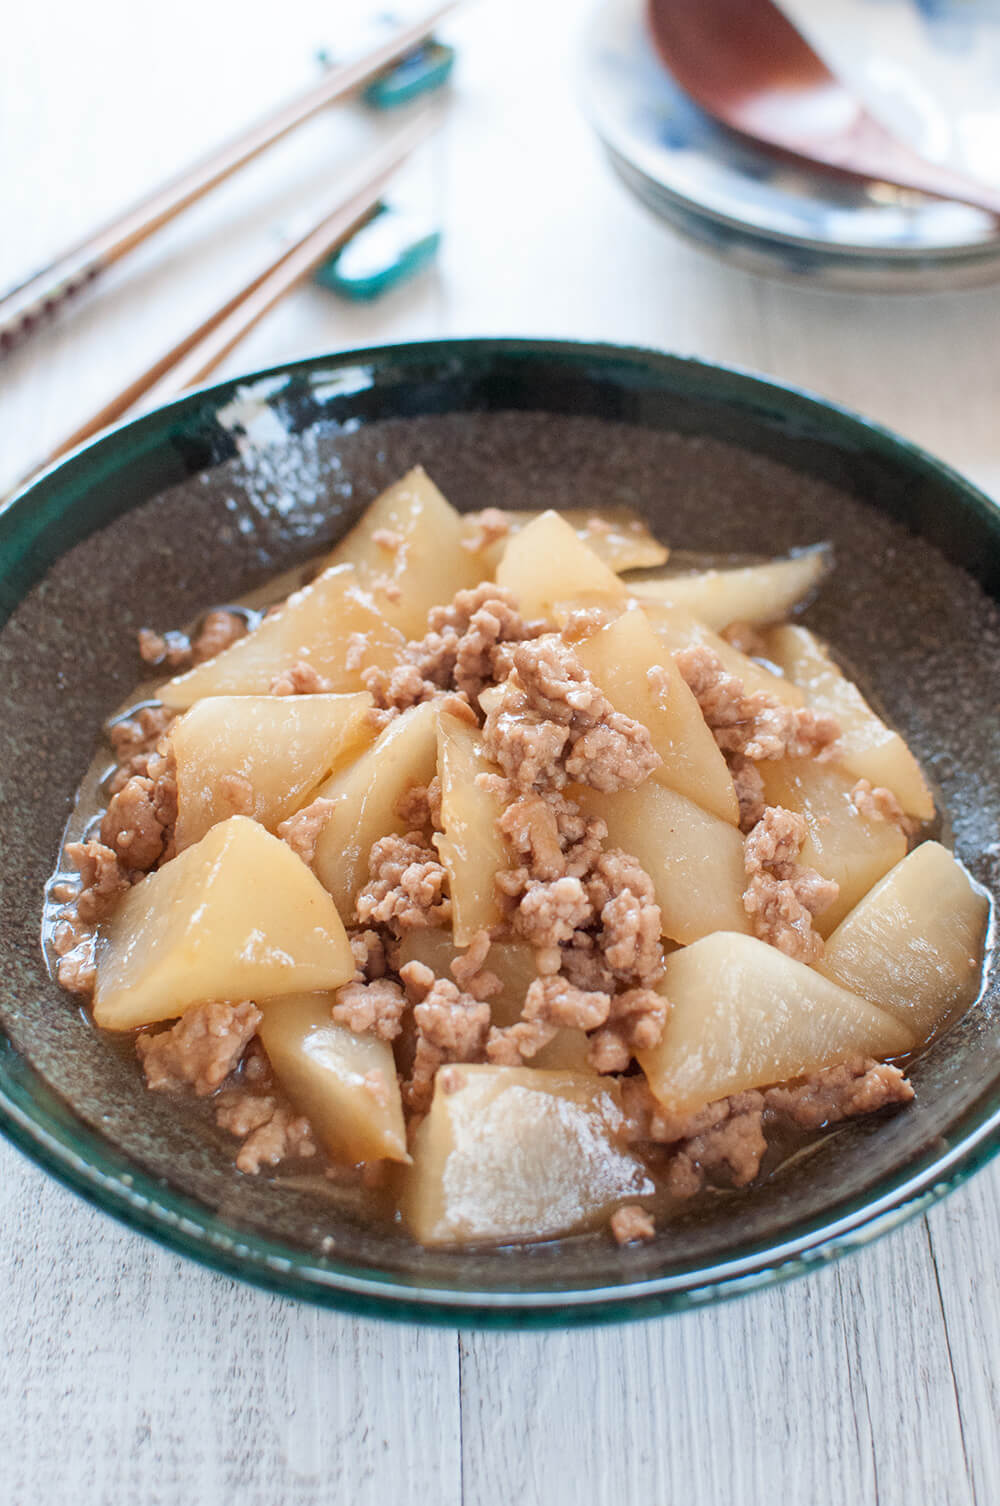 A simple braised white radish (daikon) becomes a surprisingly tasty dish when cooked in a thick soy flavoured sauce with pork mince (ground pork). The daikon is cooked until it becomes semi-transparent and tender. The meat sauce has a typical Japanese flavour with dashi, soy sauce, sake, mirin and sugar.